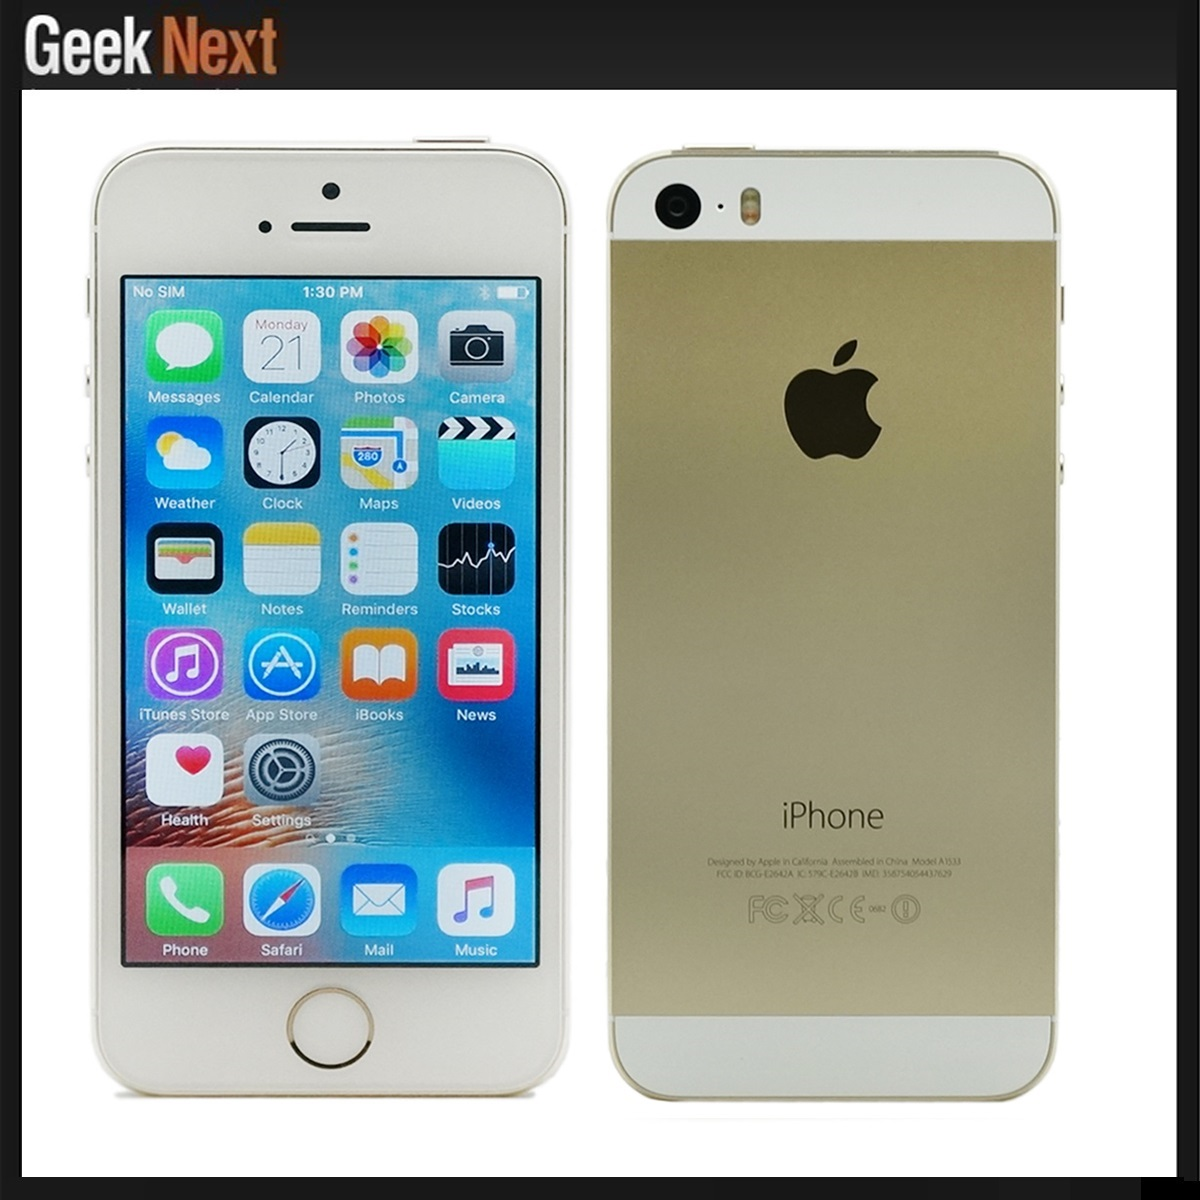 verizon iphone 5 unlocked apple iphone 5 5s 5c se at amp t t mobile verizon unlocked gsm 2811